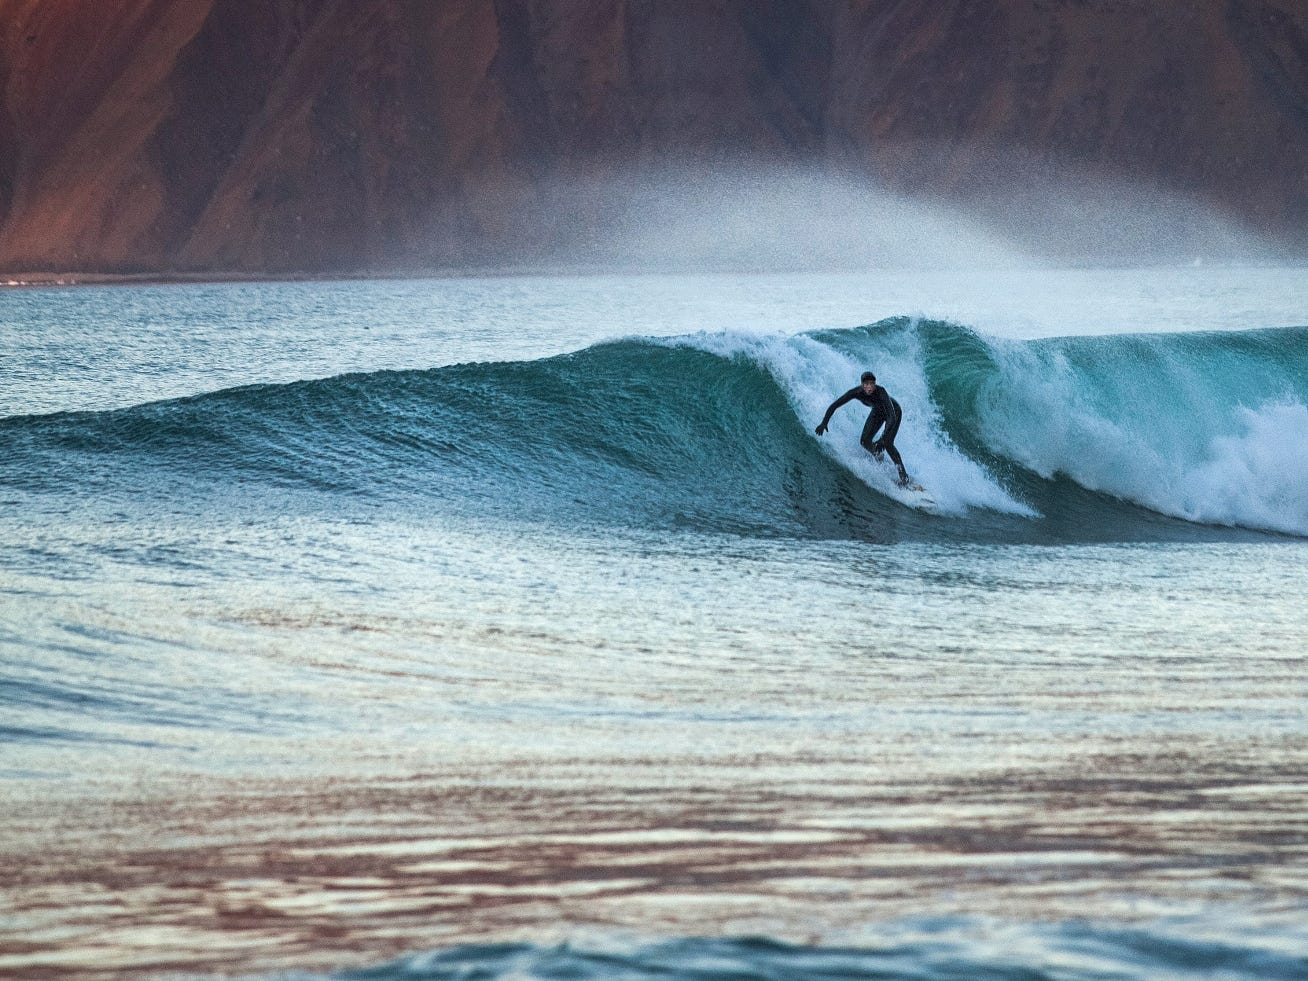 Although the water's chilly year-round, surfers still gravitate to the Reykjanes Peninsula near Iceland's capital of Reykjavik.